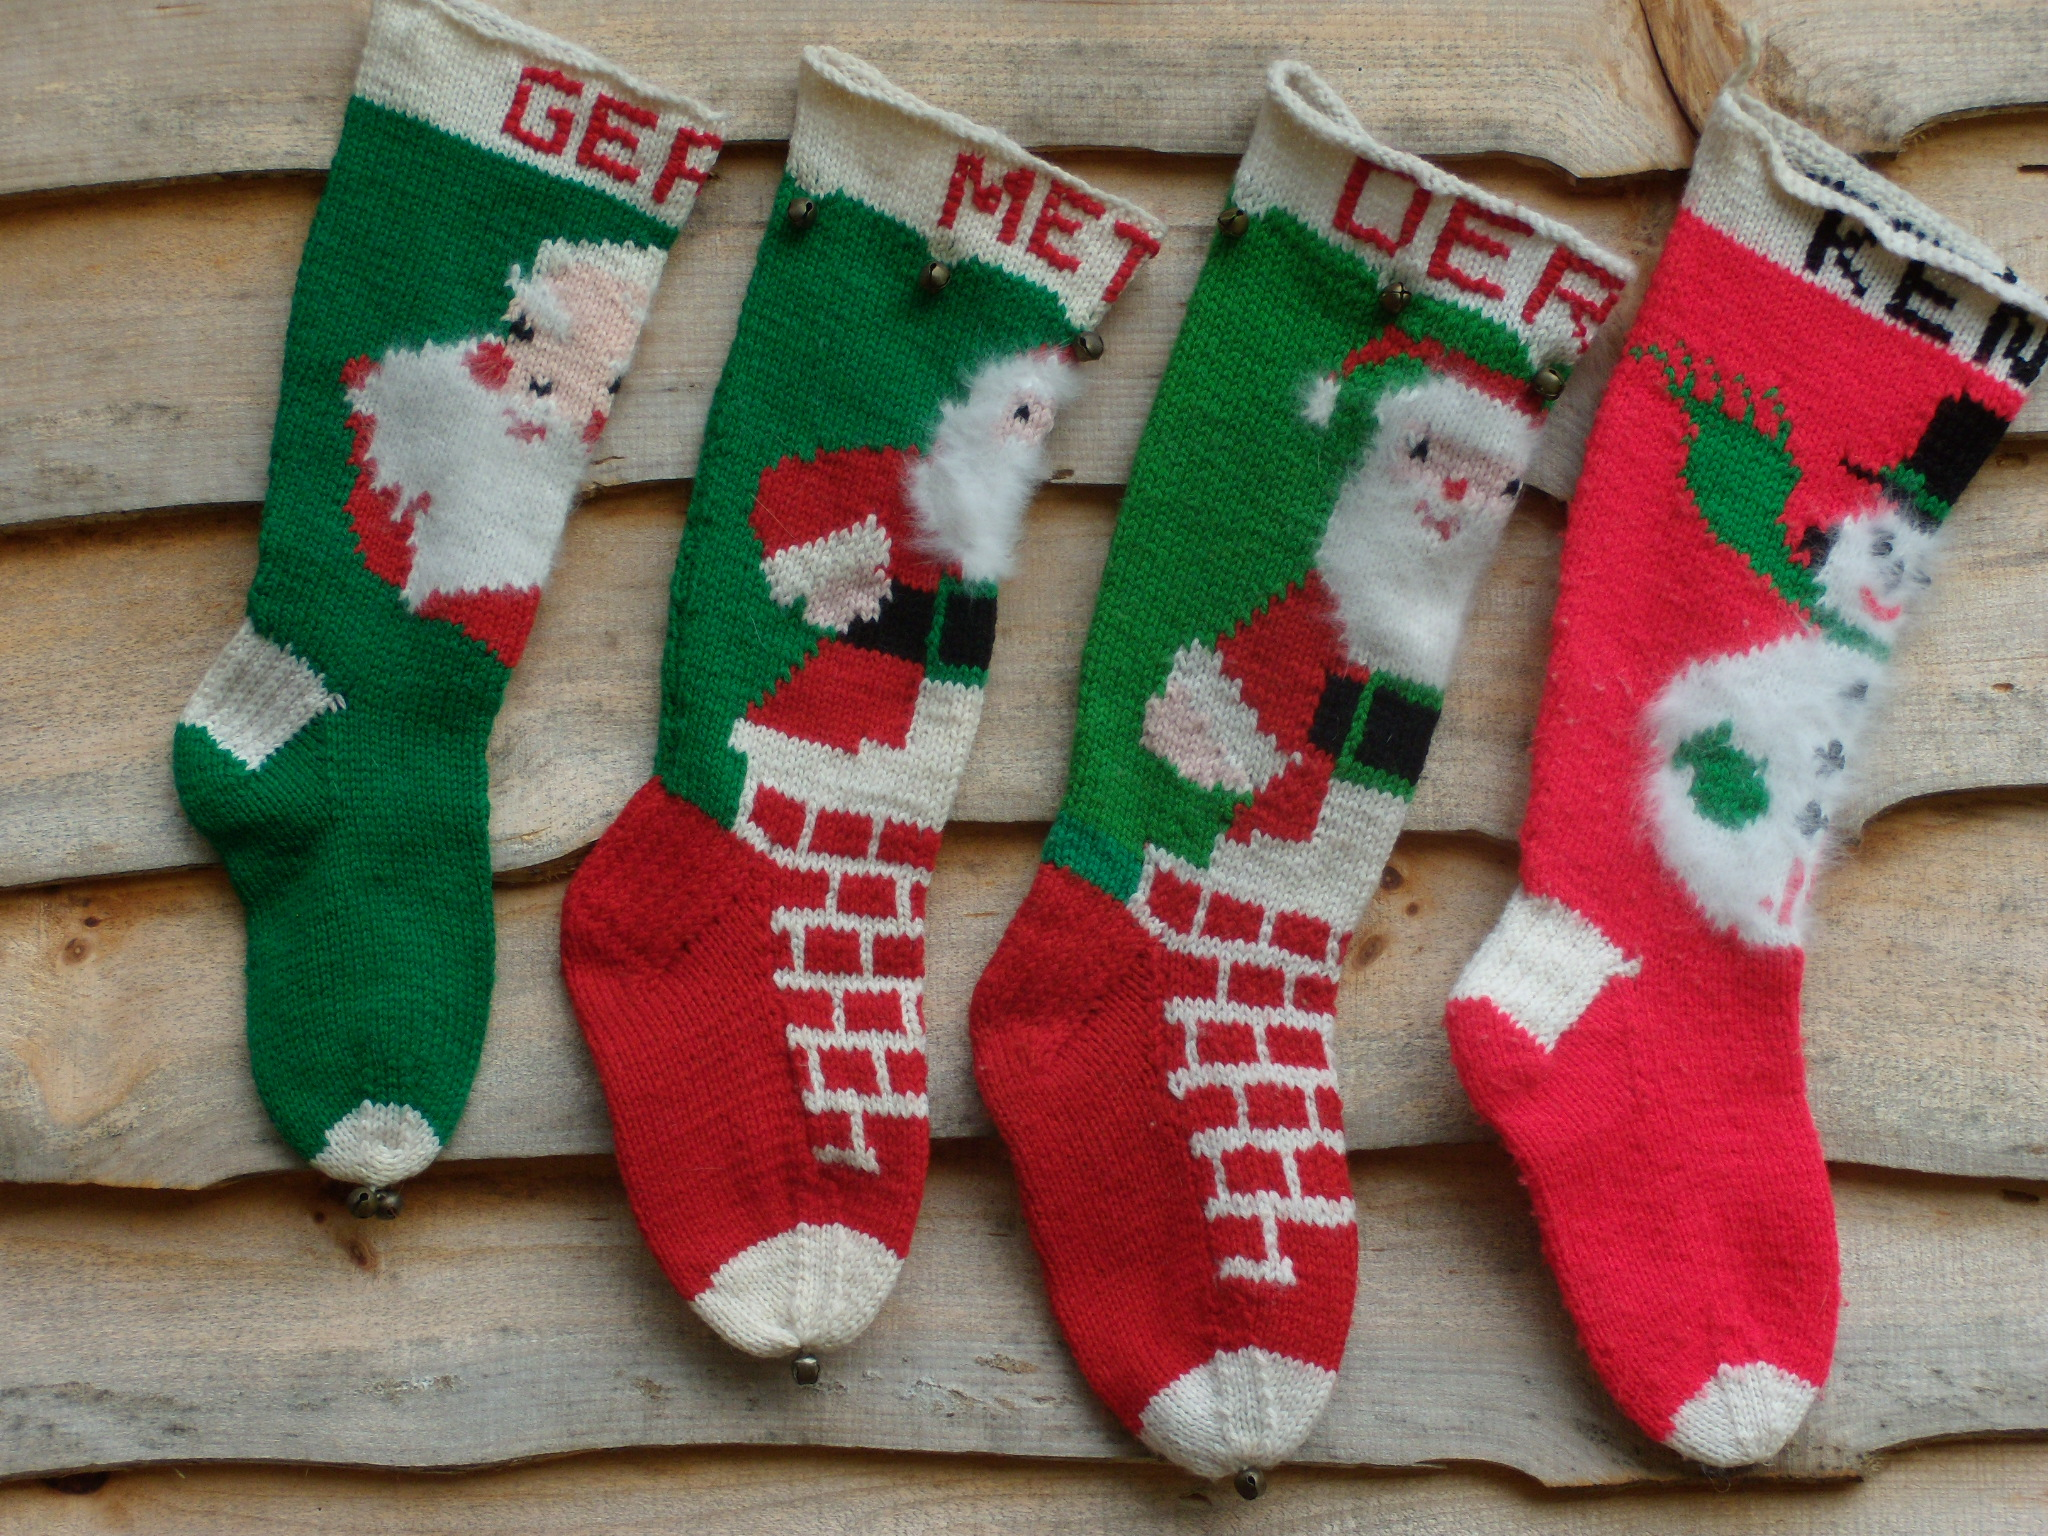 Knit Christmas Stockings Patterns : Halcyon Yarn Blog Category ... Halcyon Yarn